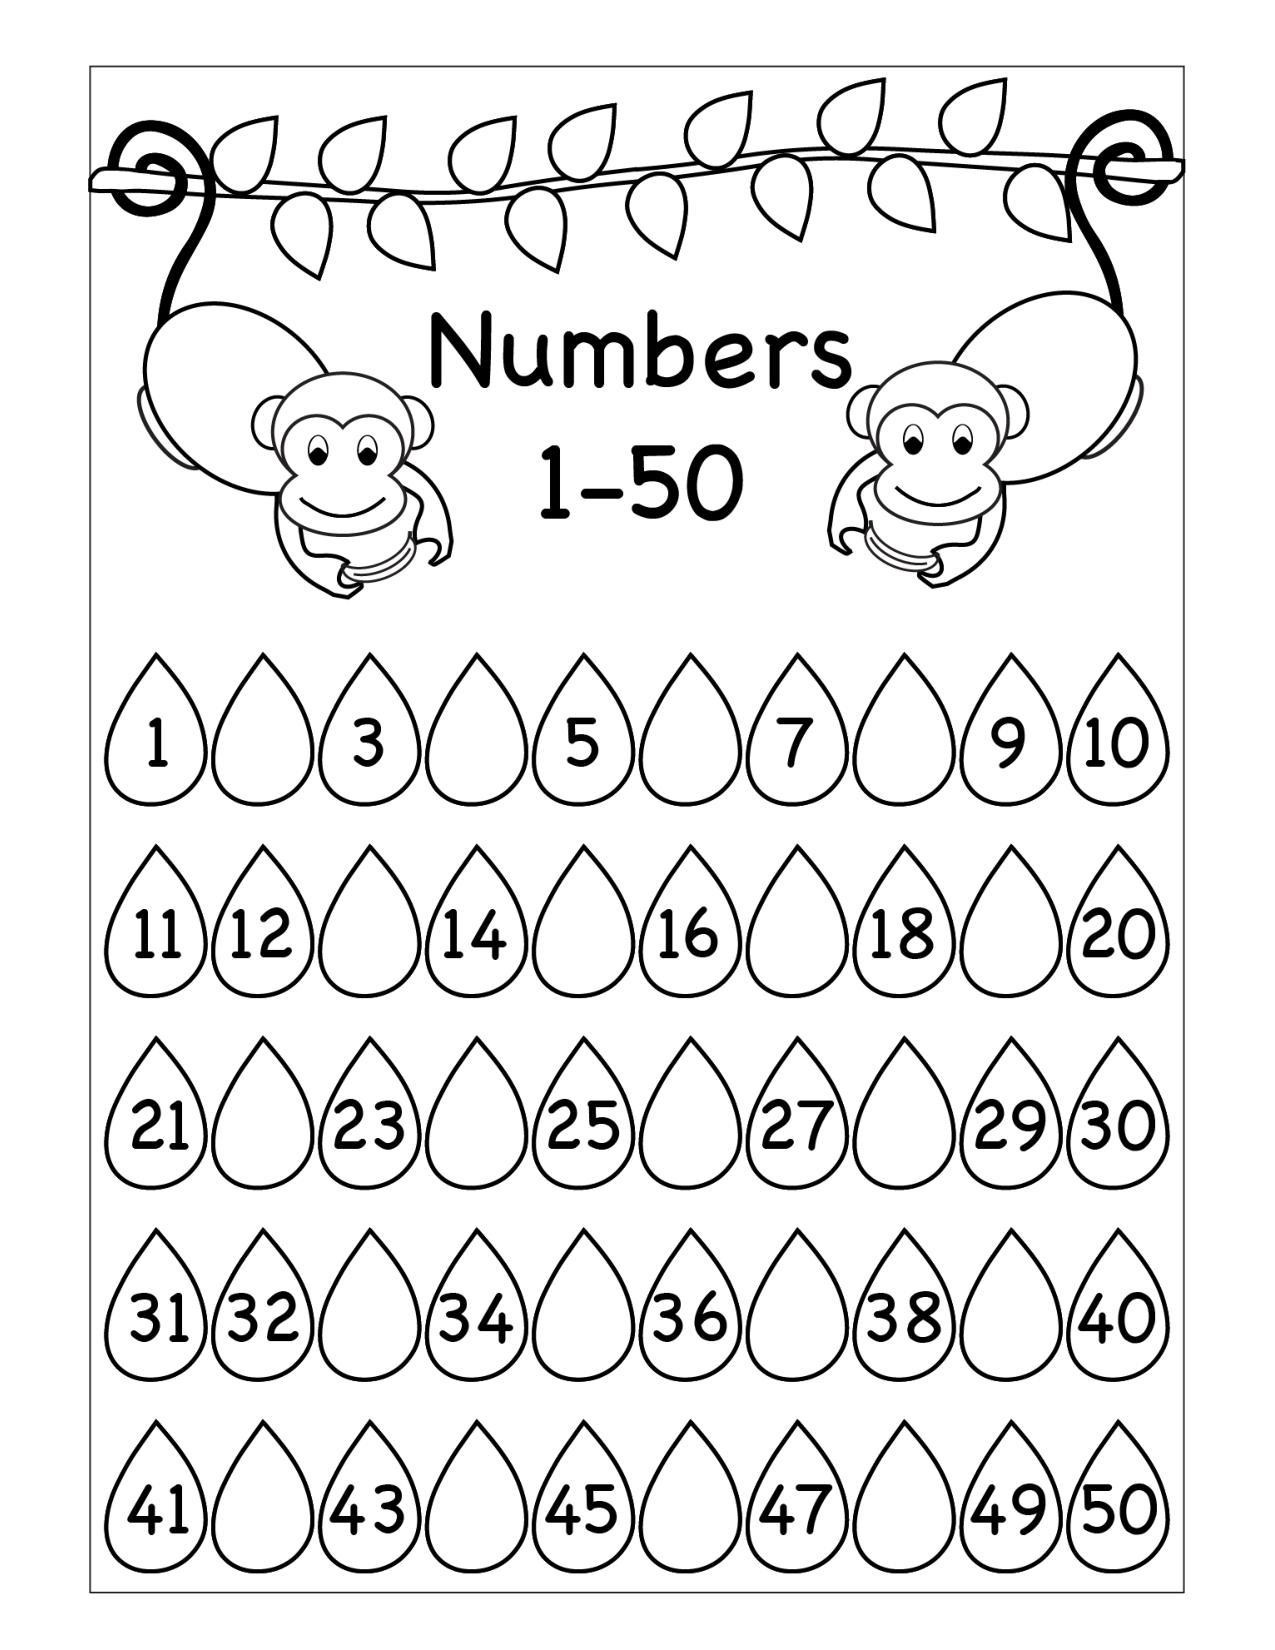 Polygon Worksheets 5th Grade Missing Numbers Worksheet Printable Worksheets and Free